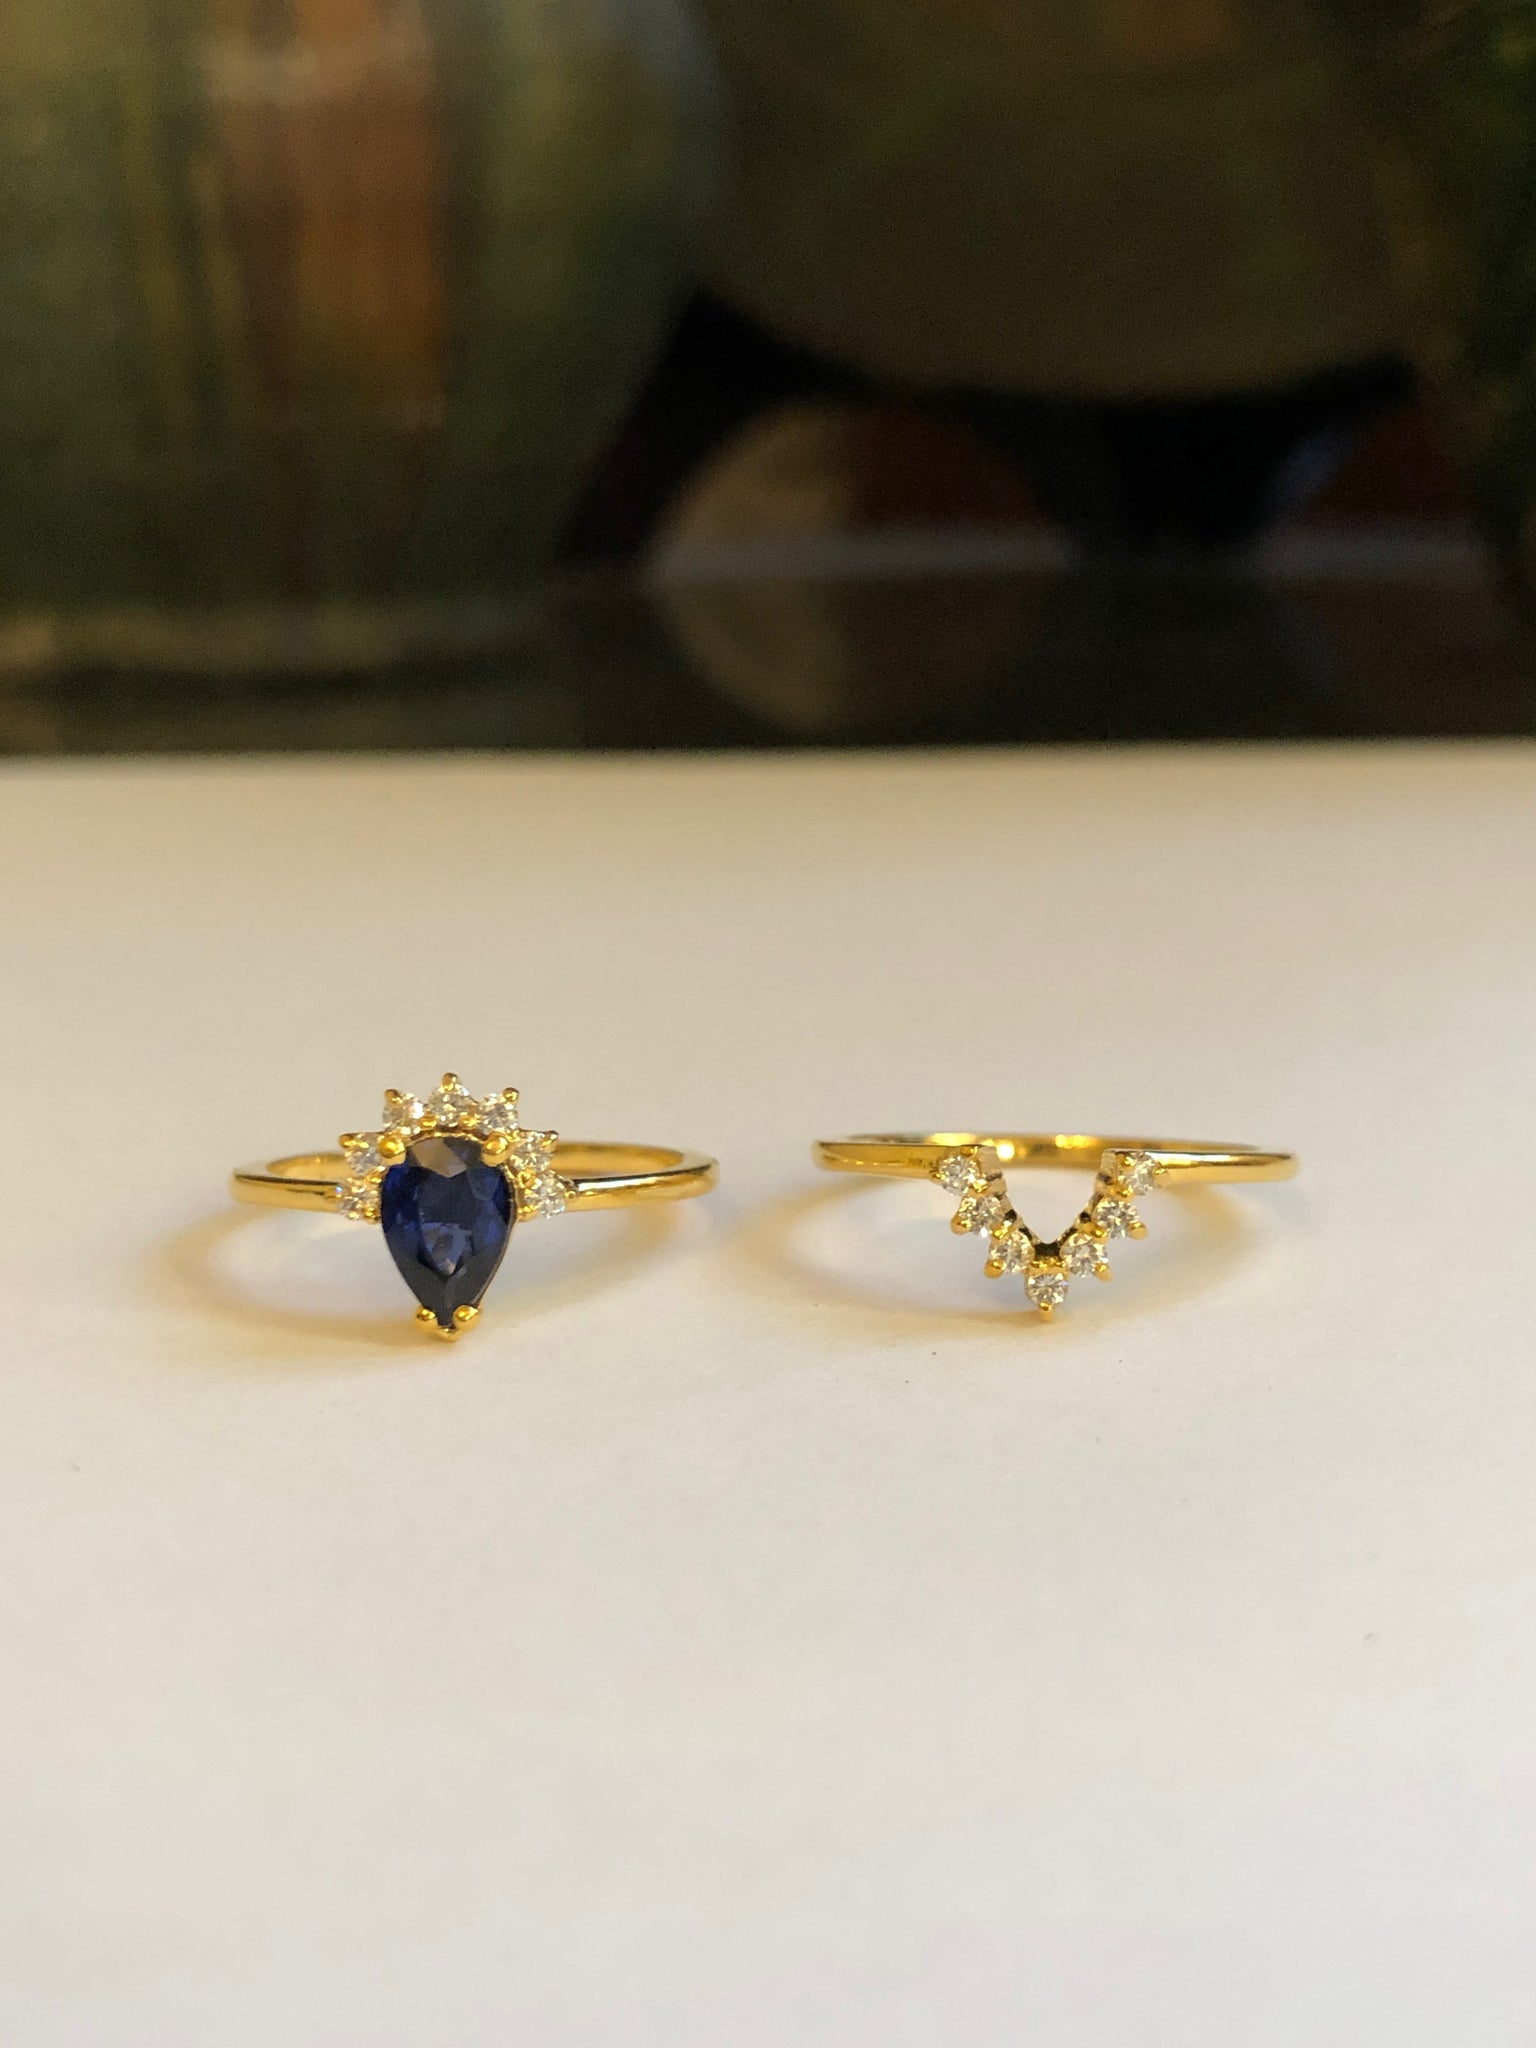 Stackable Rings with Pear-Shaped Sapphire and Round Diamonds, Solid 14k Gold (5396979744812)